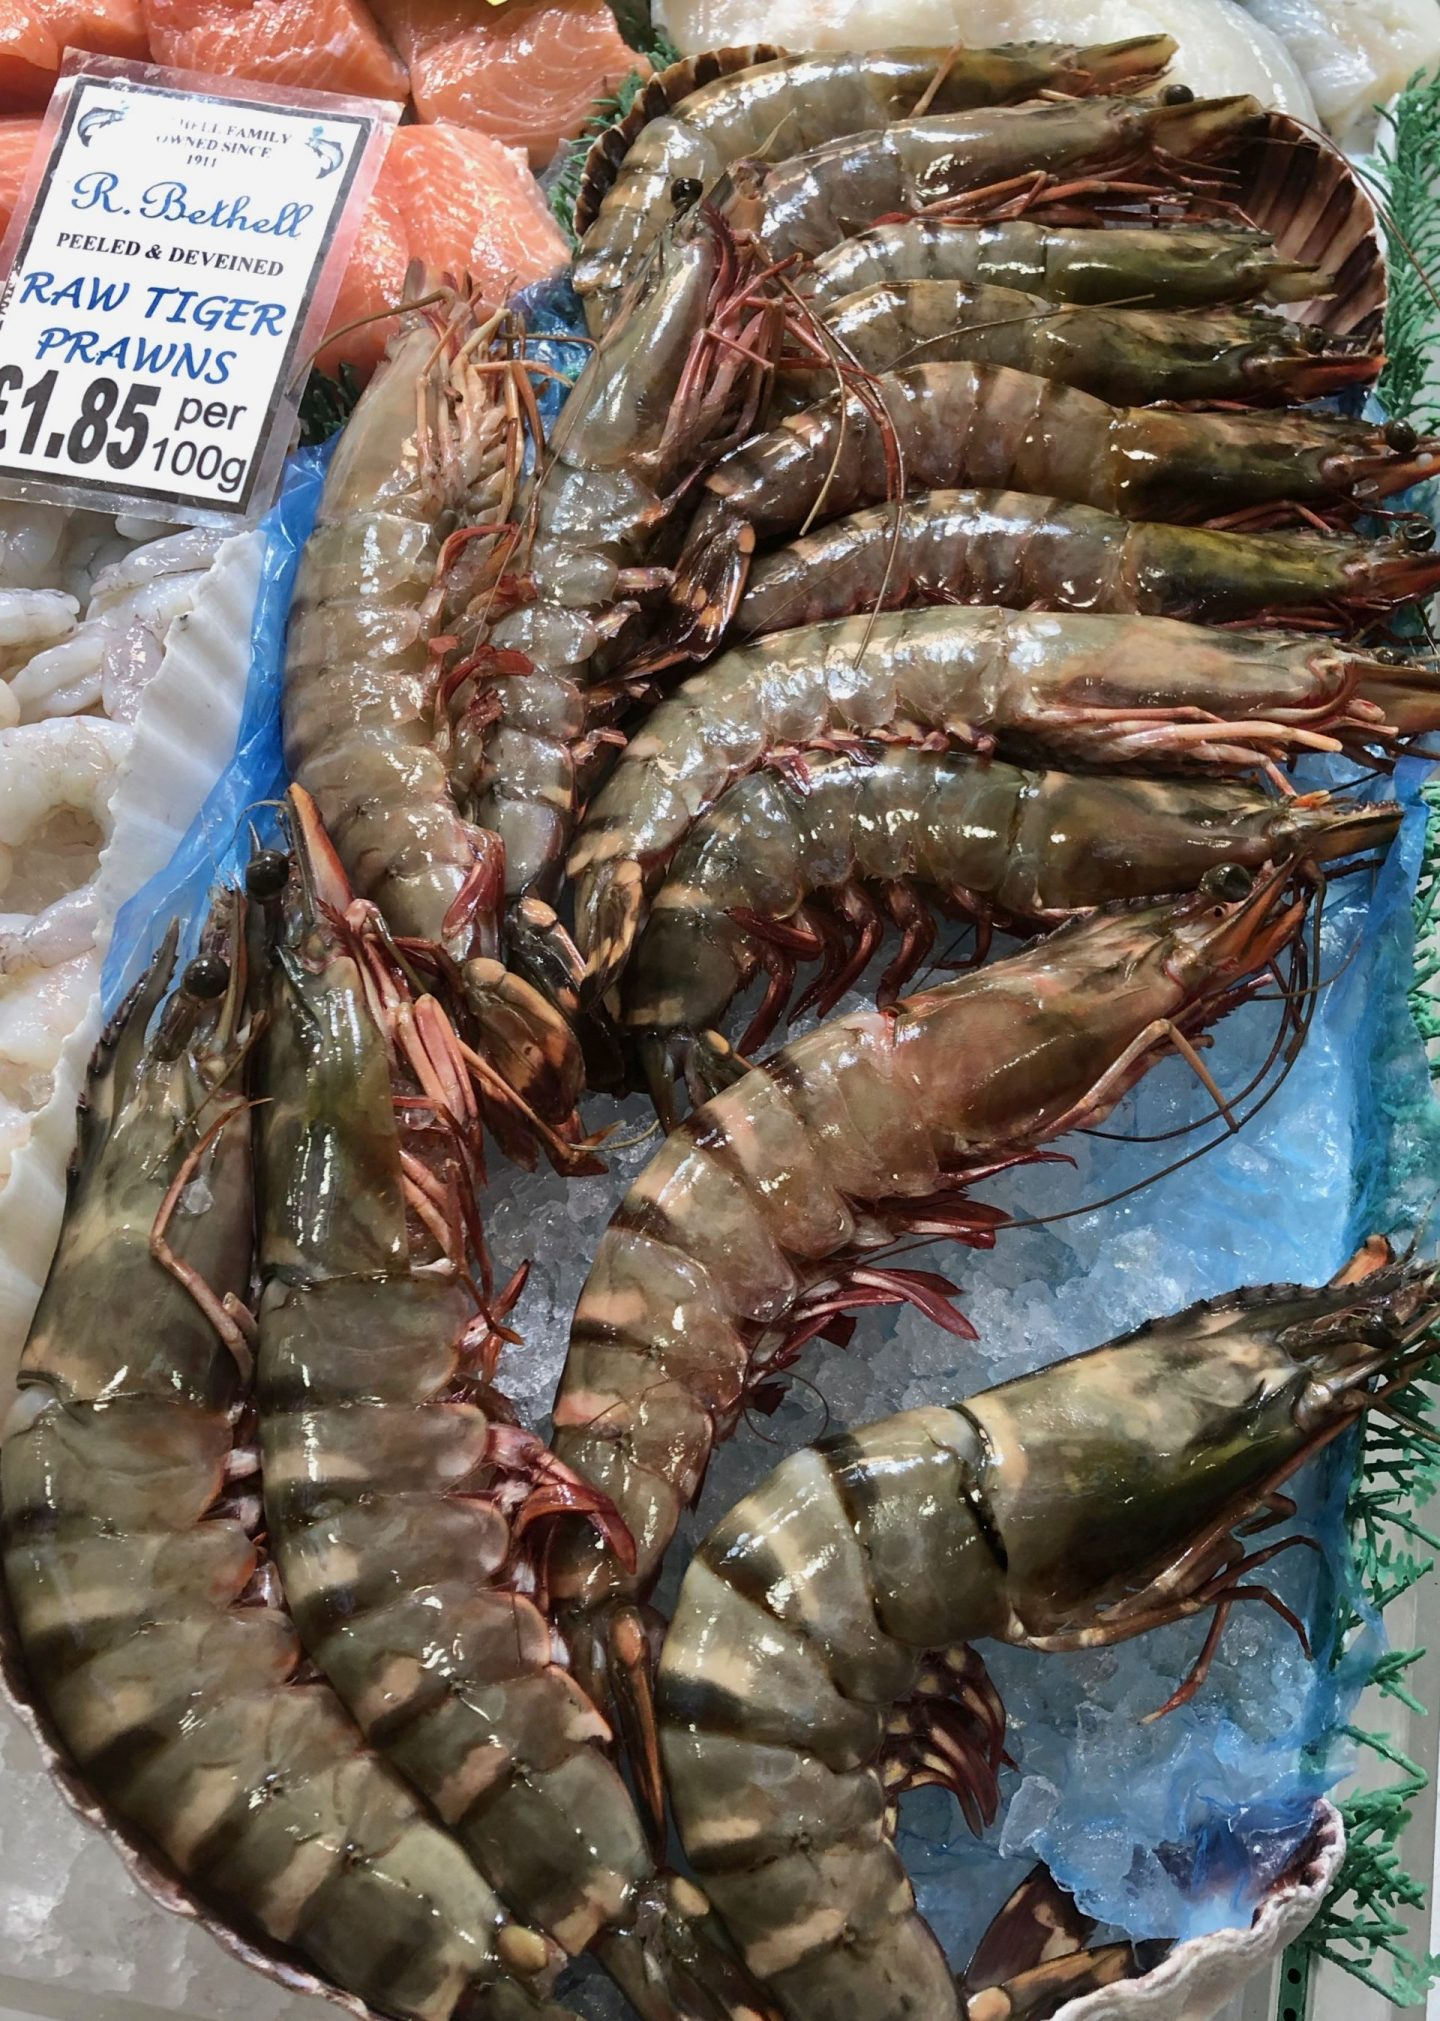 A close up of raw tiger prawns at R Bethell in Leeds Kirkgate Market